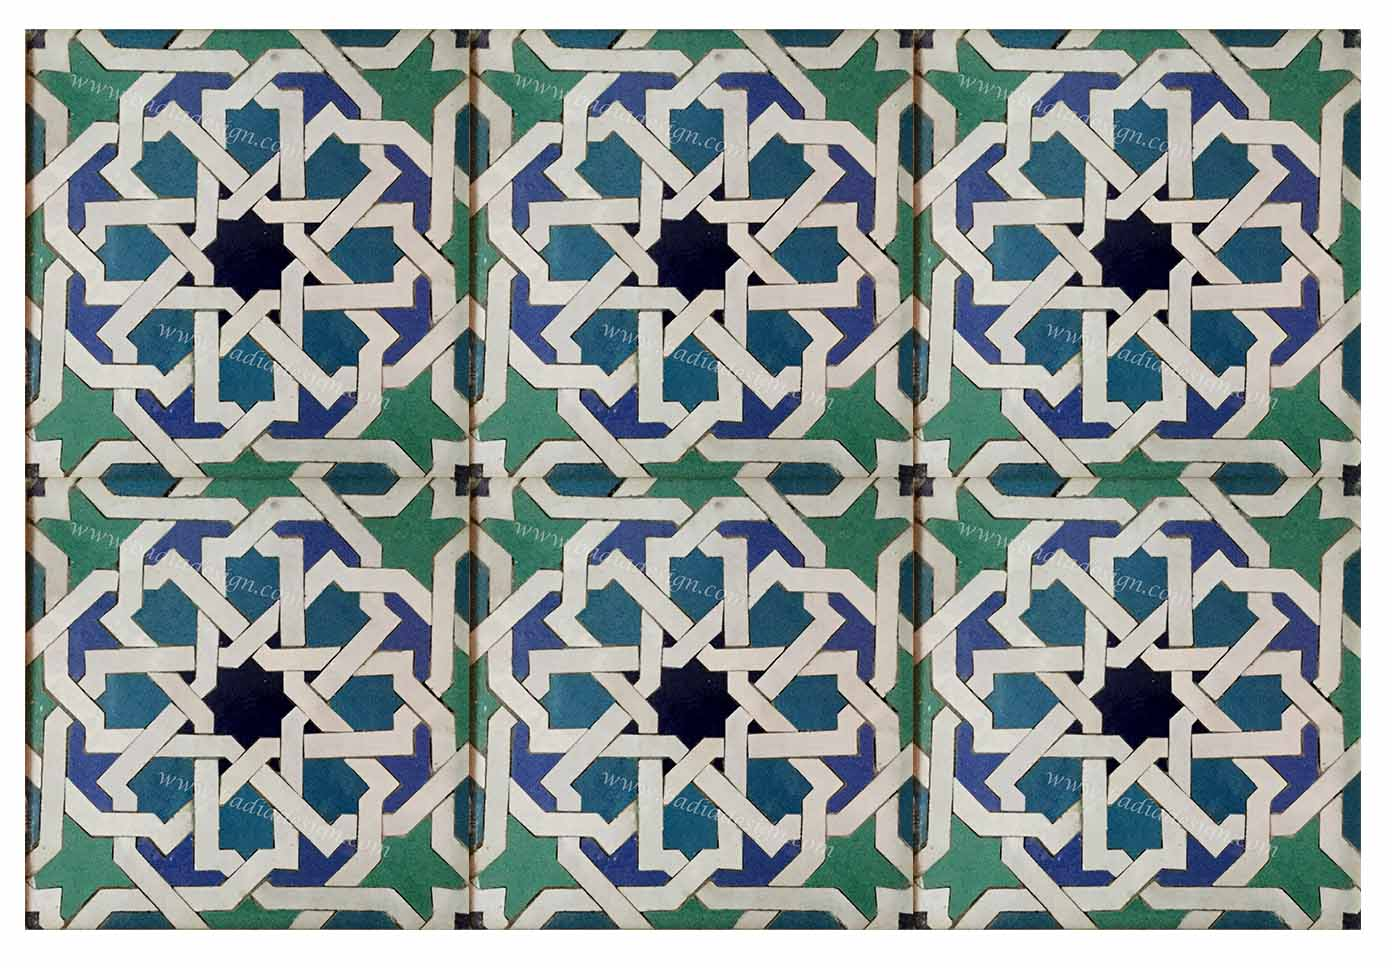 Amazing 1200 X 600 Floor Tiles Small 16 Ceiling Tiles Regular 2 X 4 Ceiling Tile 2X2 Drop Ceiling Tiles Young 3 Tile Patterns For Floors Purple3D Ceramic Tiles Moroccan Mosaic Hand Painted Floor Tile From Badia Design Inc